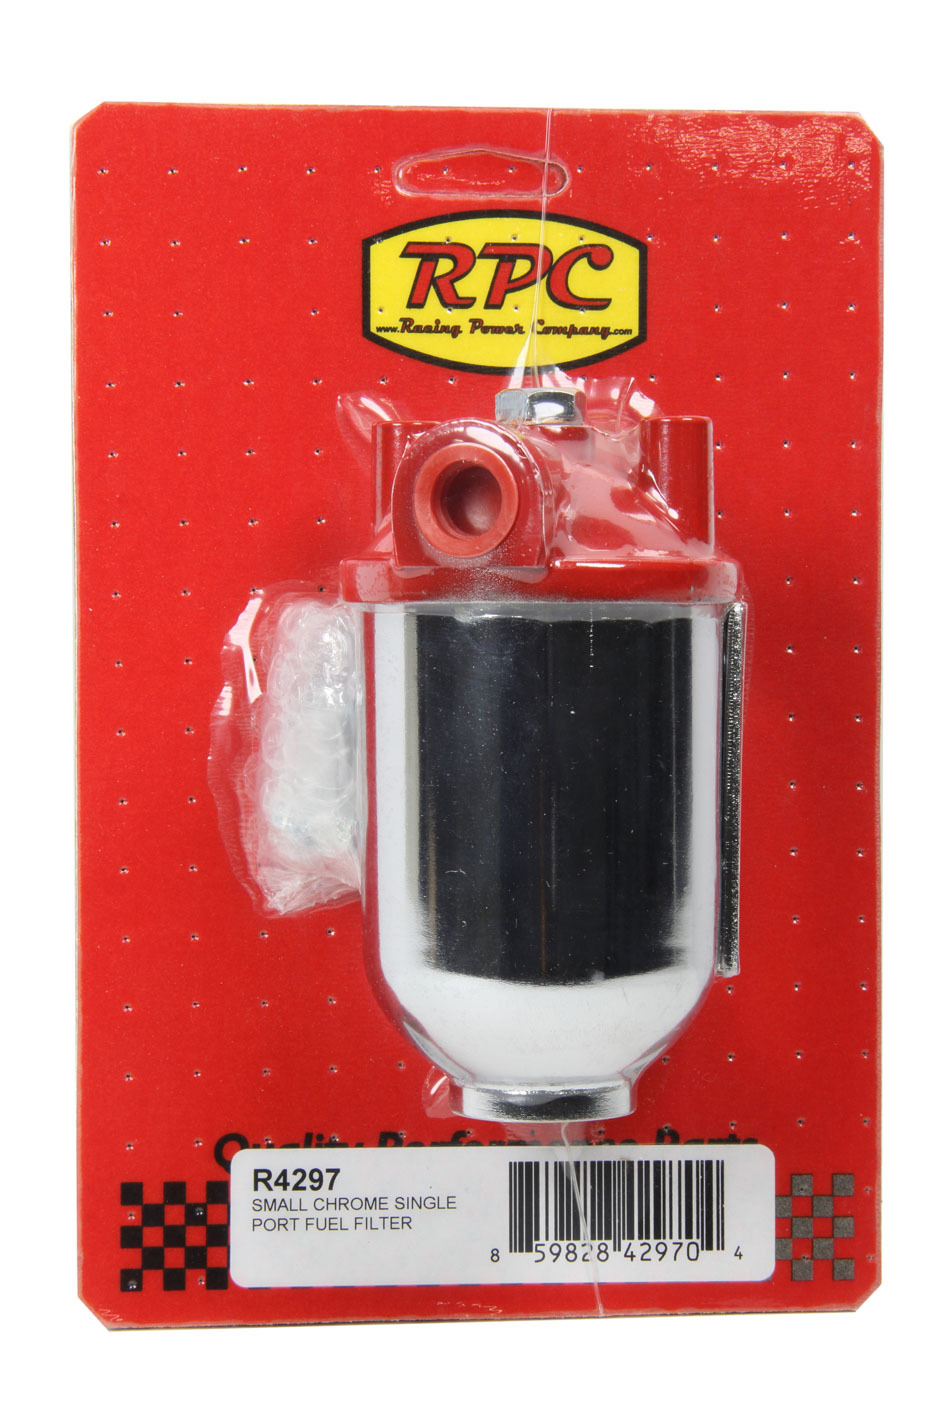 Racing Power Company R4297 Fuel Filter, Canister, 10 Micron, Paper Element, 3/8 in NPT Inlet, 3/8 in NPT Outlet, Steel, Chrome Plated / Red, Each